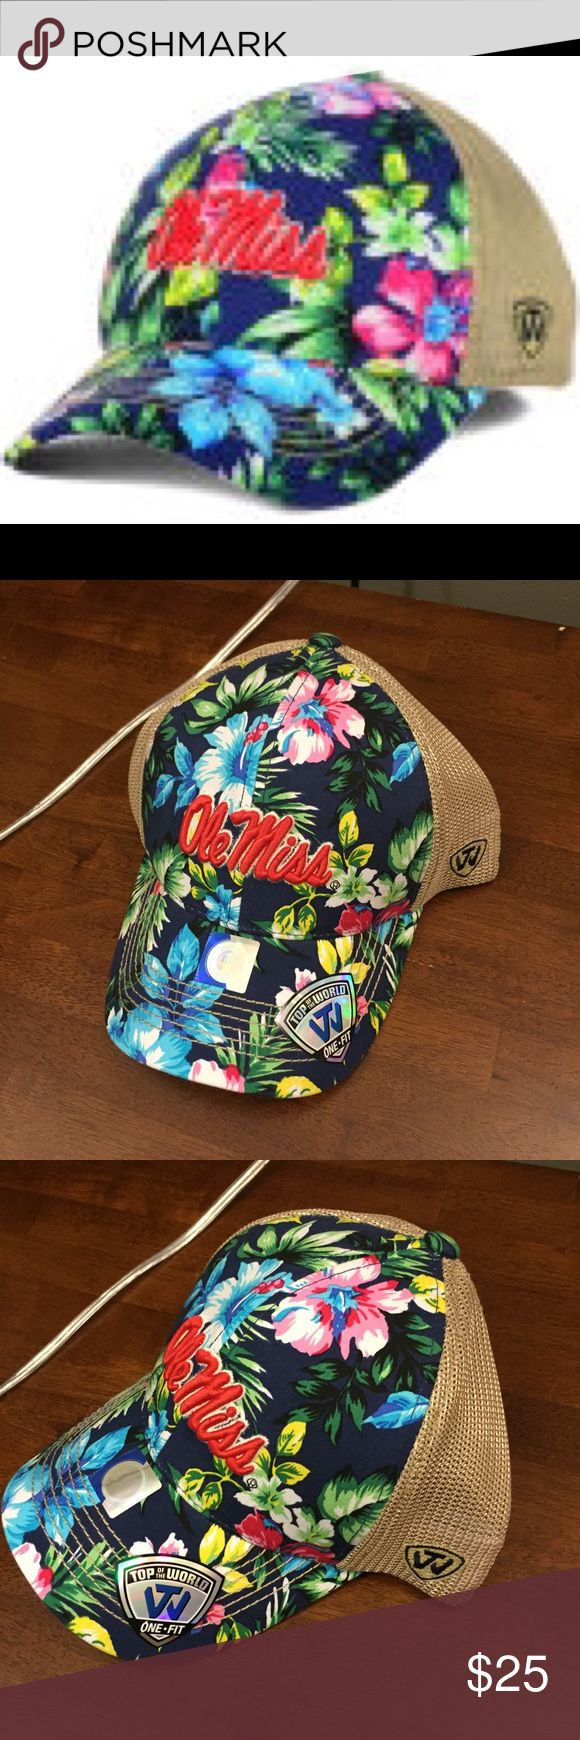 🆕 Ole Miss Shore Hat NWT NCAA 🚨 Mississippi Brand new with tags! Thank you for looking! #ygwyt002 NCAA Accessories Hats